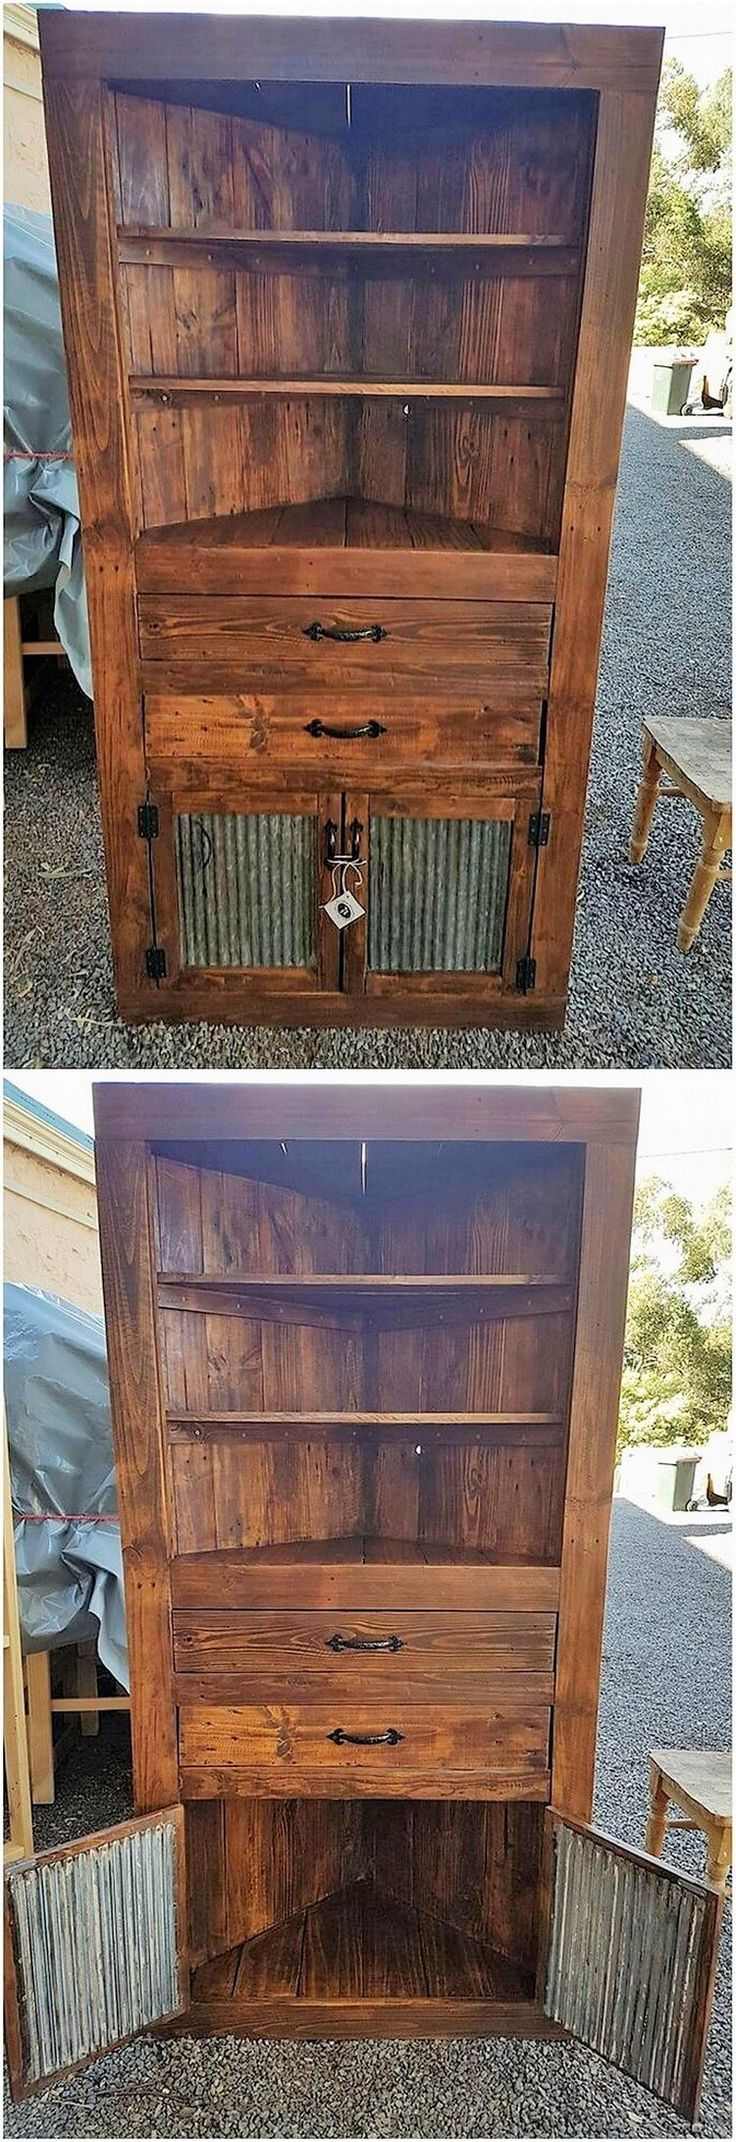 Check out this mesmerizing wood pallet corner unit or the cabinet for your house! Two in one service! Isn't it great and inspiring to make it part of your house? The whole shelving stand has been conceptually set with the wood pallet rustic material use that is worth-mentioning.